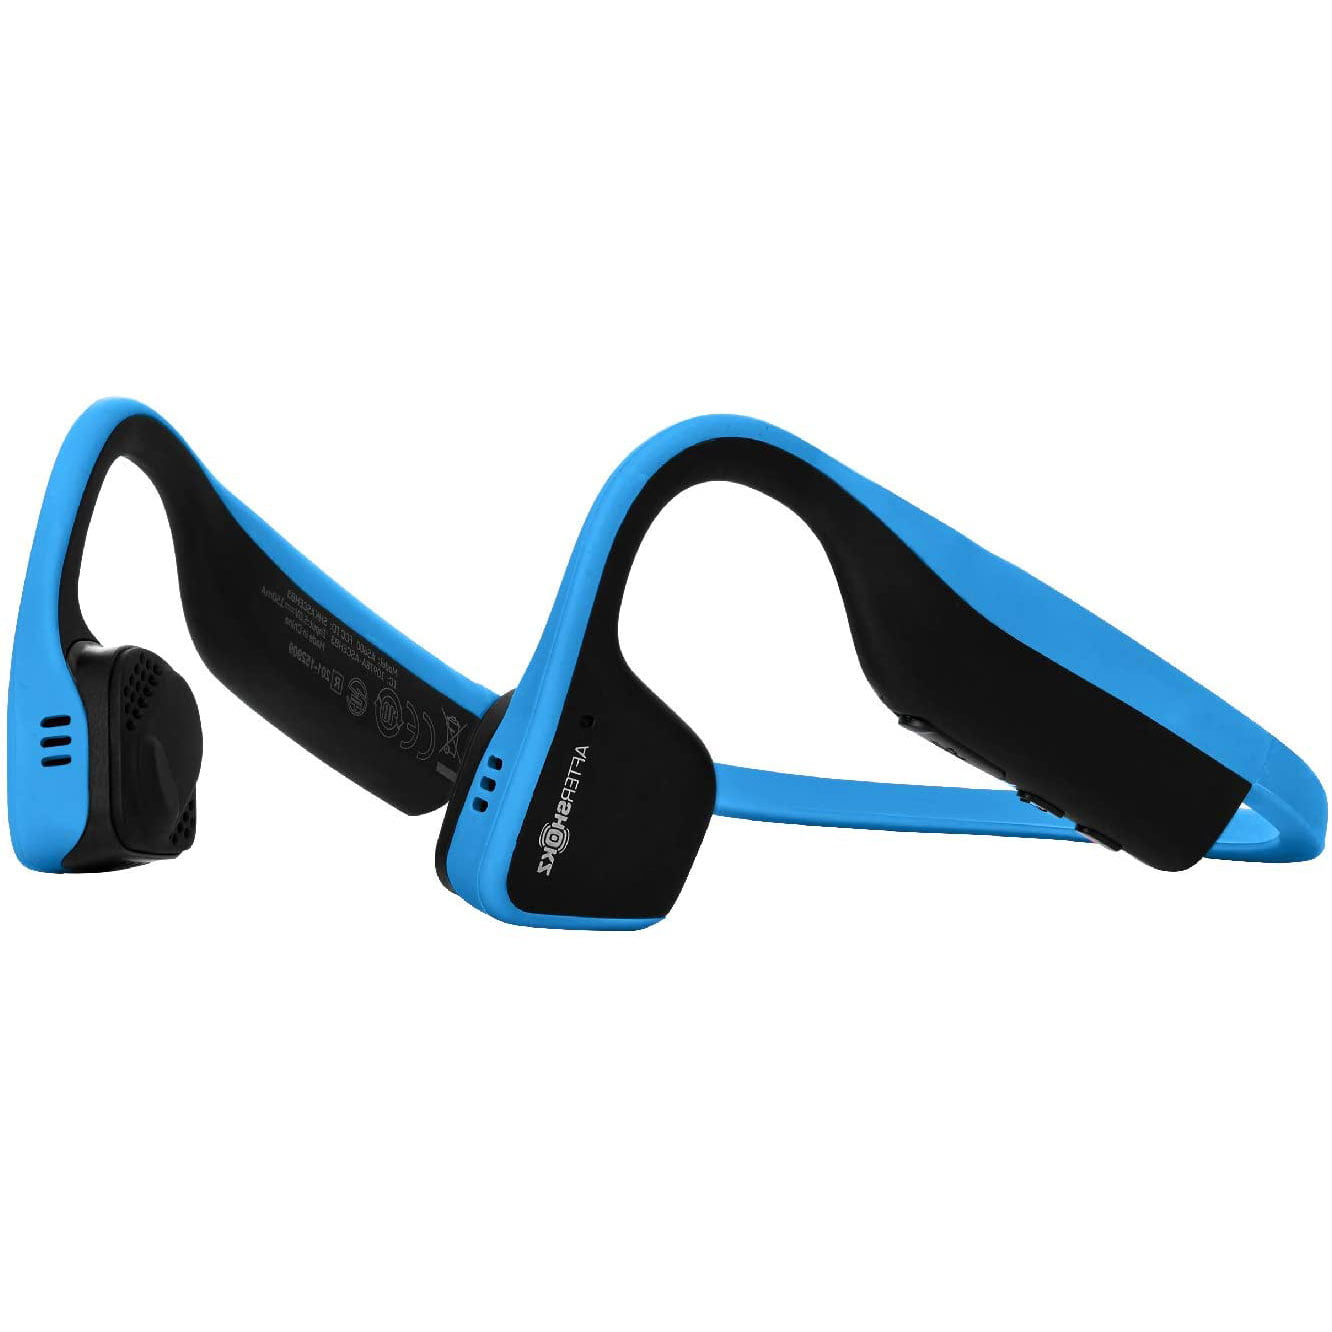 Casti Behind the Ear Aftershokz Titanium AS600, Conductie prin os, Wireless, Portable Case, IP55, Ocean Blue